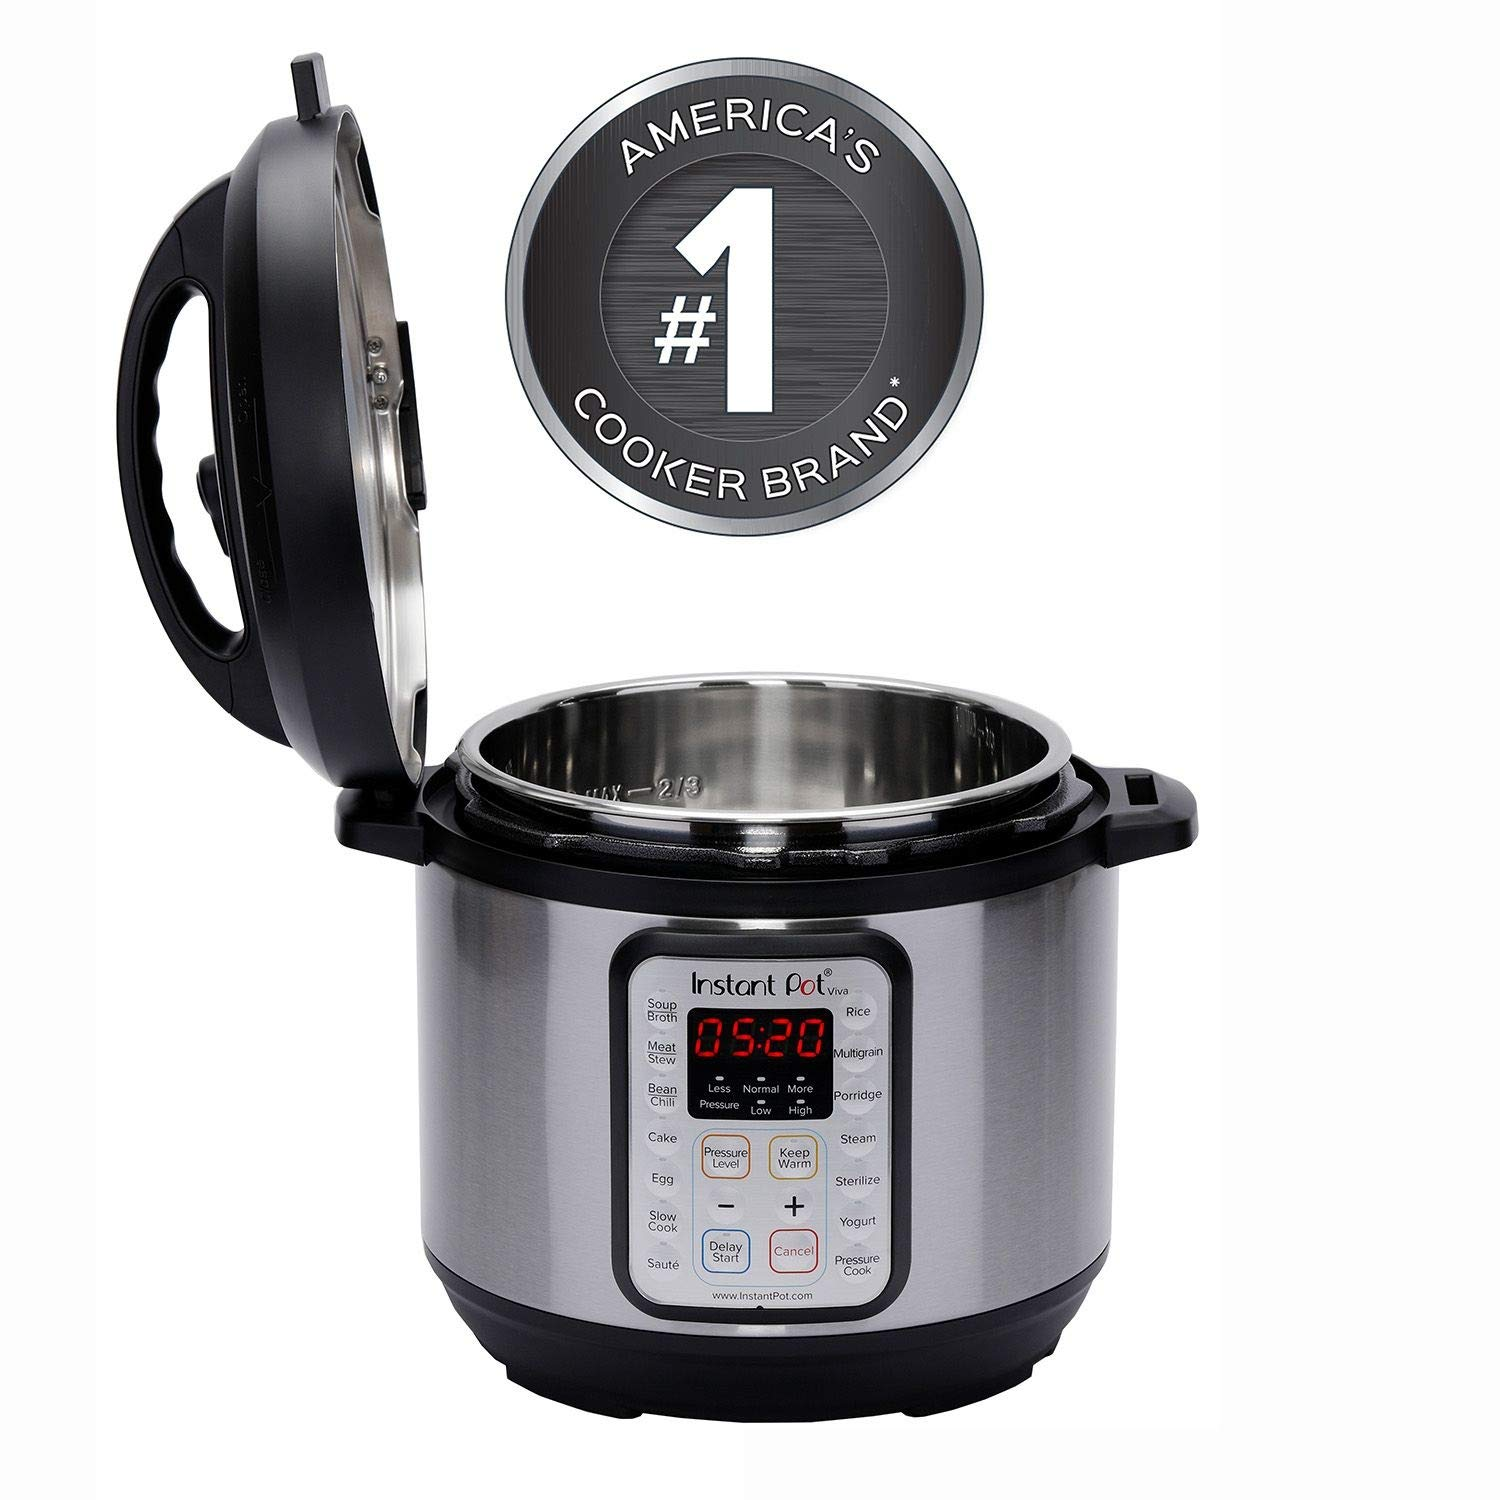 New Instant Pot 8 QT Viva 9-in-1 Multi-Use Programmable Pressure Cooker with recipe book